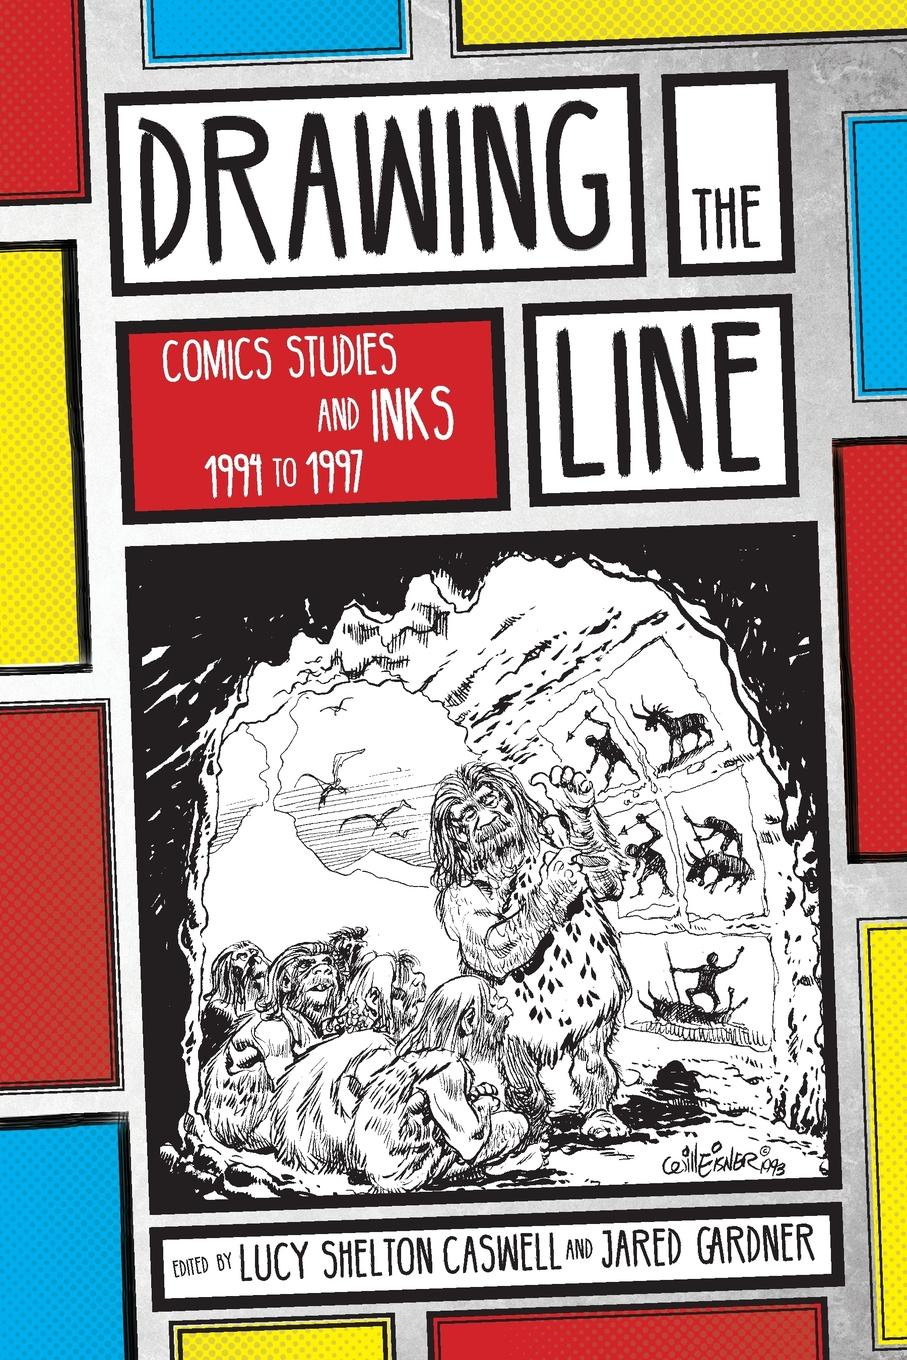 Lucy Shelton Caswell Drawing the Line. Comics Studies and INKS, 1994-1997 недорго, оригинальная цена